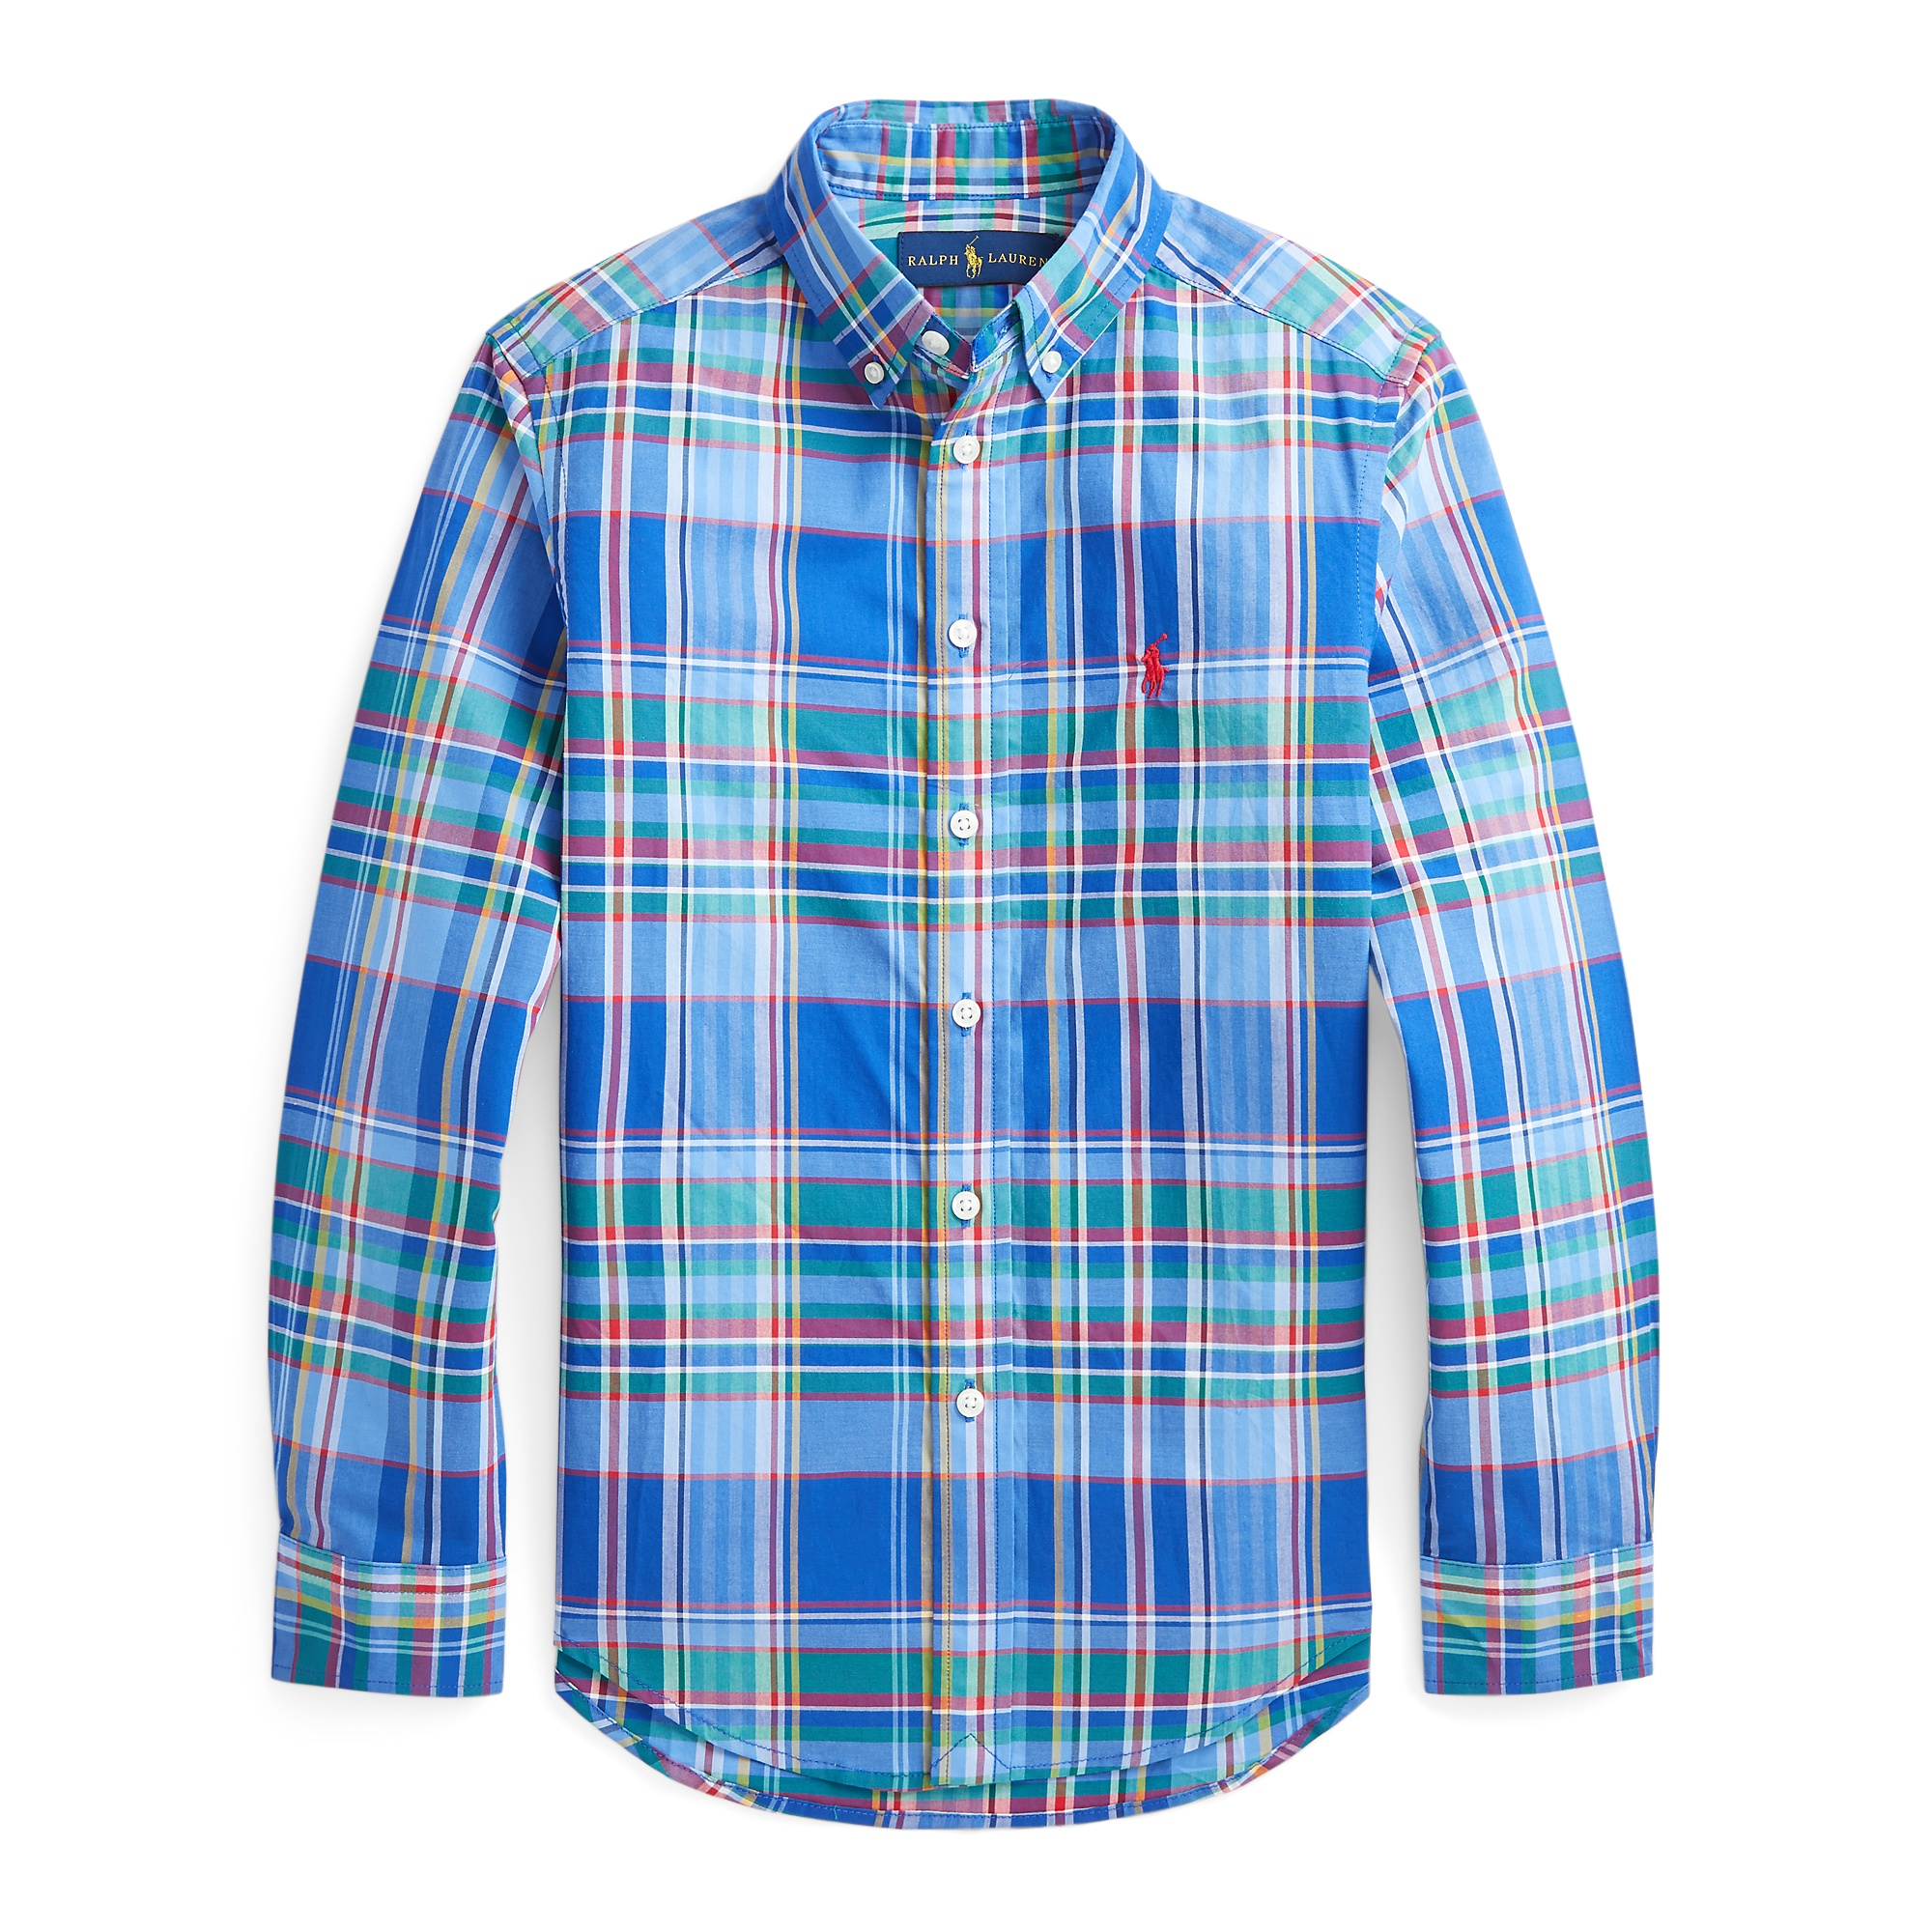 Ralph Lauren Plaid Performance Poplin Shirt